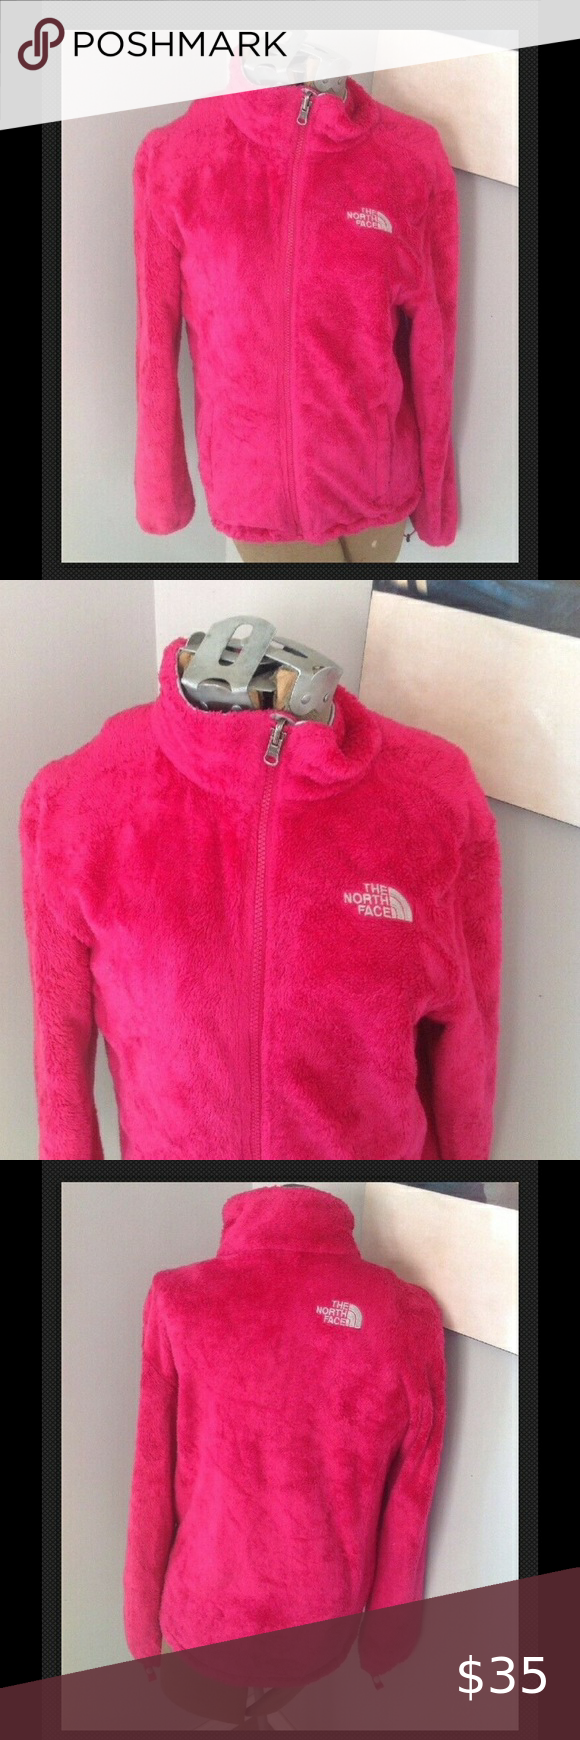 The North Face Osito Fuzzy Hot Pink Jacket Sp Pink Jacket North Face Osito Pink Fuzzy Jacket [ 1740 x 580 Pixel ]